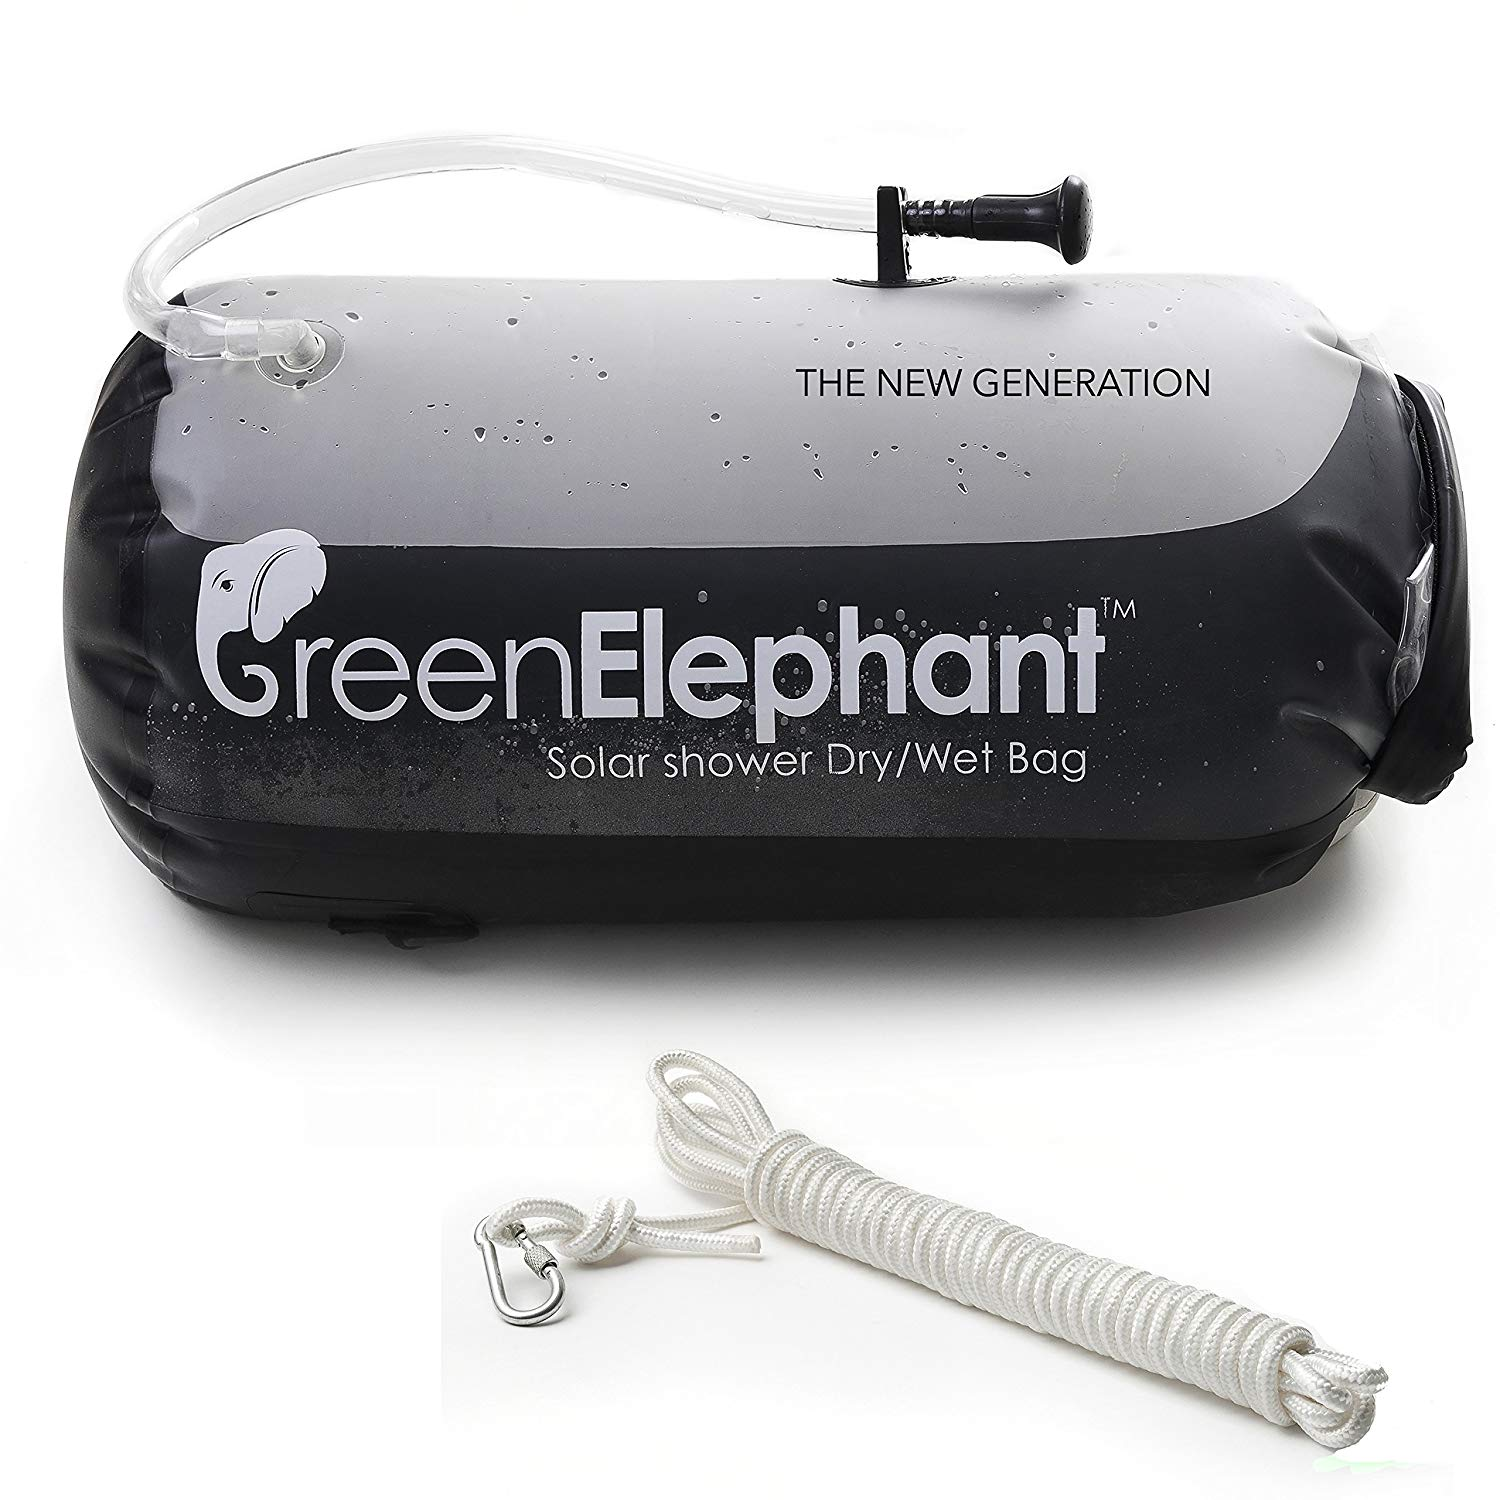 Green Elephant 2-in-1 Solar Shower & Dry Bag – Non-Toxic TPU 5-Gallon Portable Shower Doubles as Dry Storage Sack for Camping, Hiking, Fishing, Boating, Beach + On/Off Shower Hose, Free 5m Rope